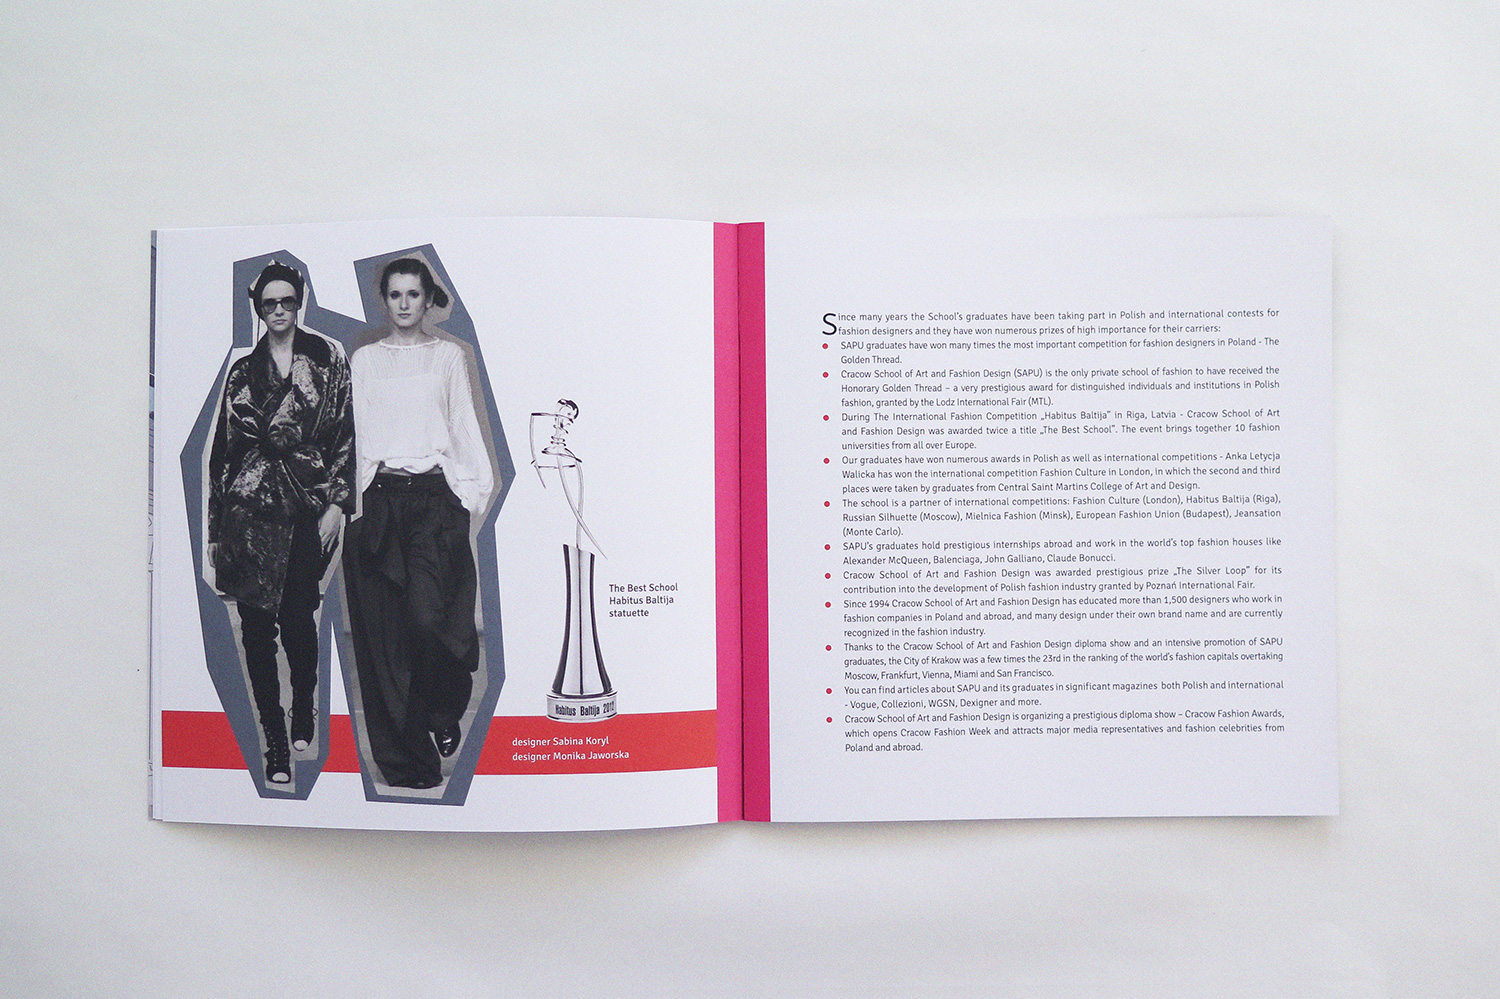 cracow school of art and fashion design brochure by nina gregier (3)